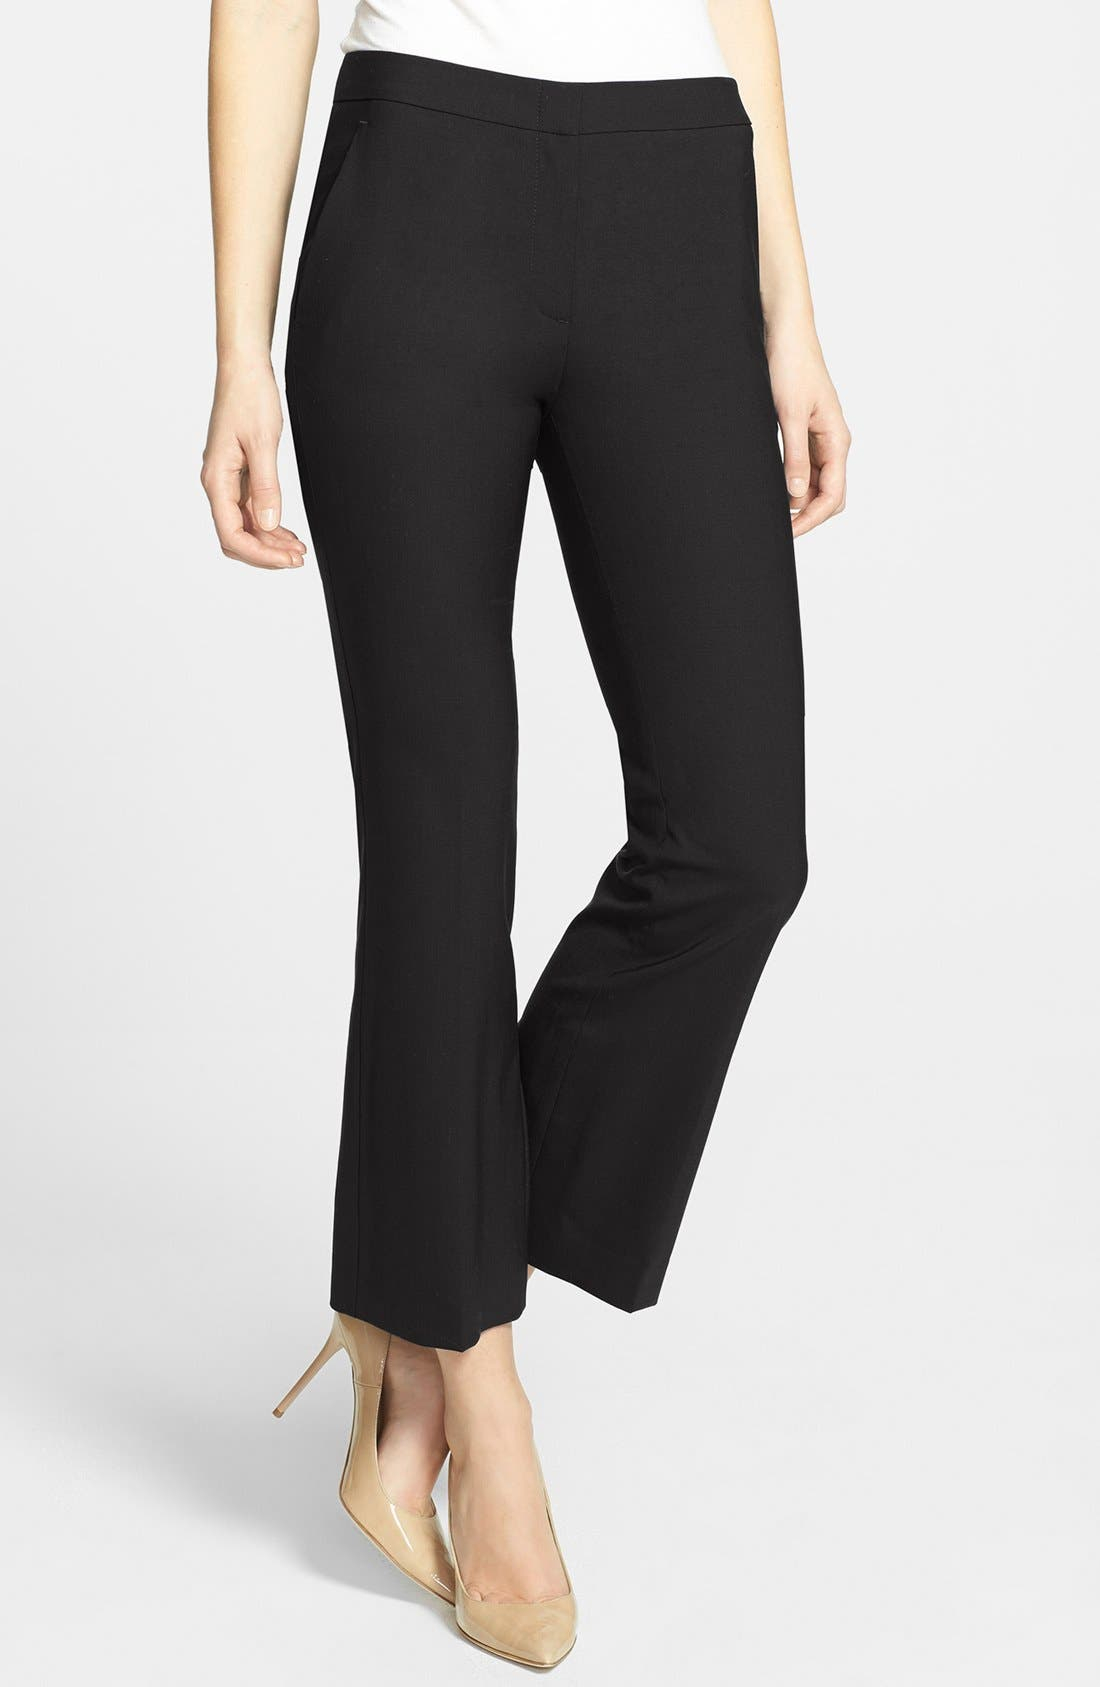 Alternate Image 1 Selected - Theory 'Benetta' Stretch Wool Pants